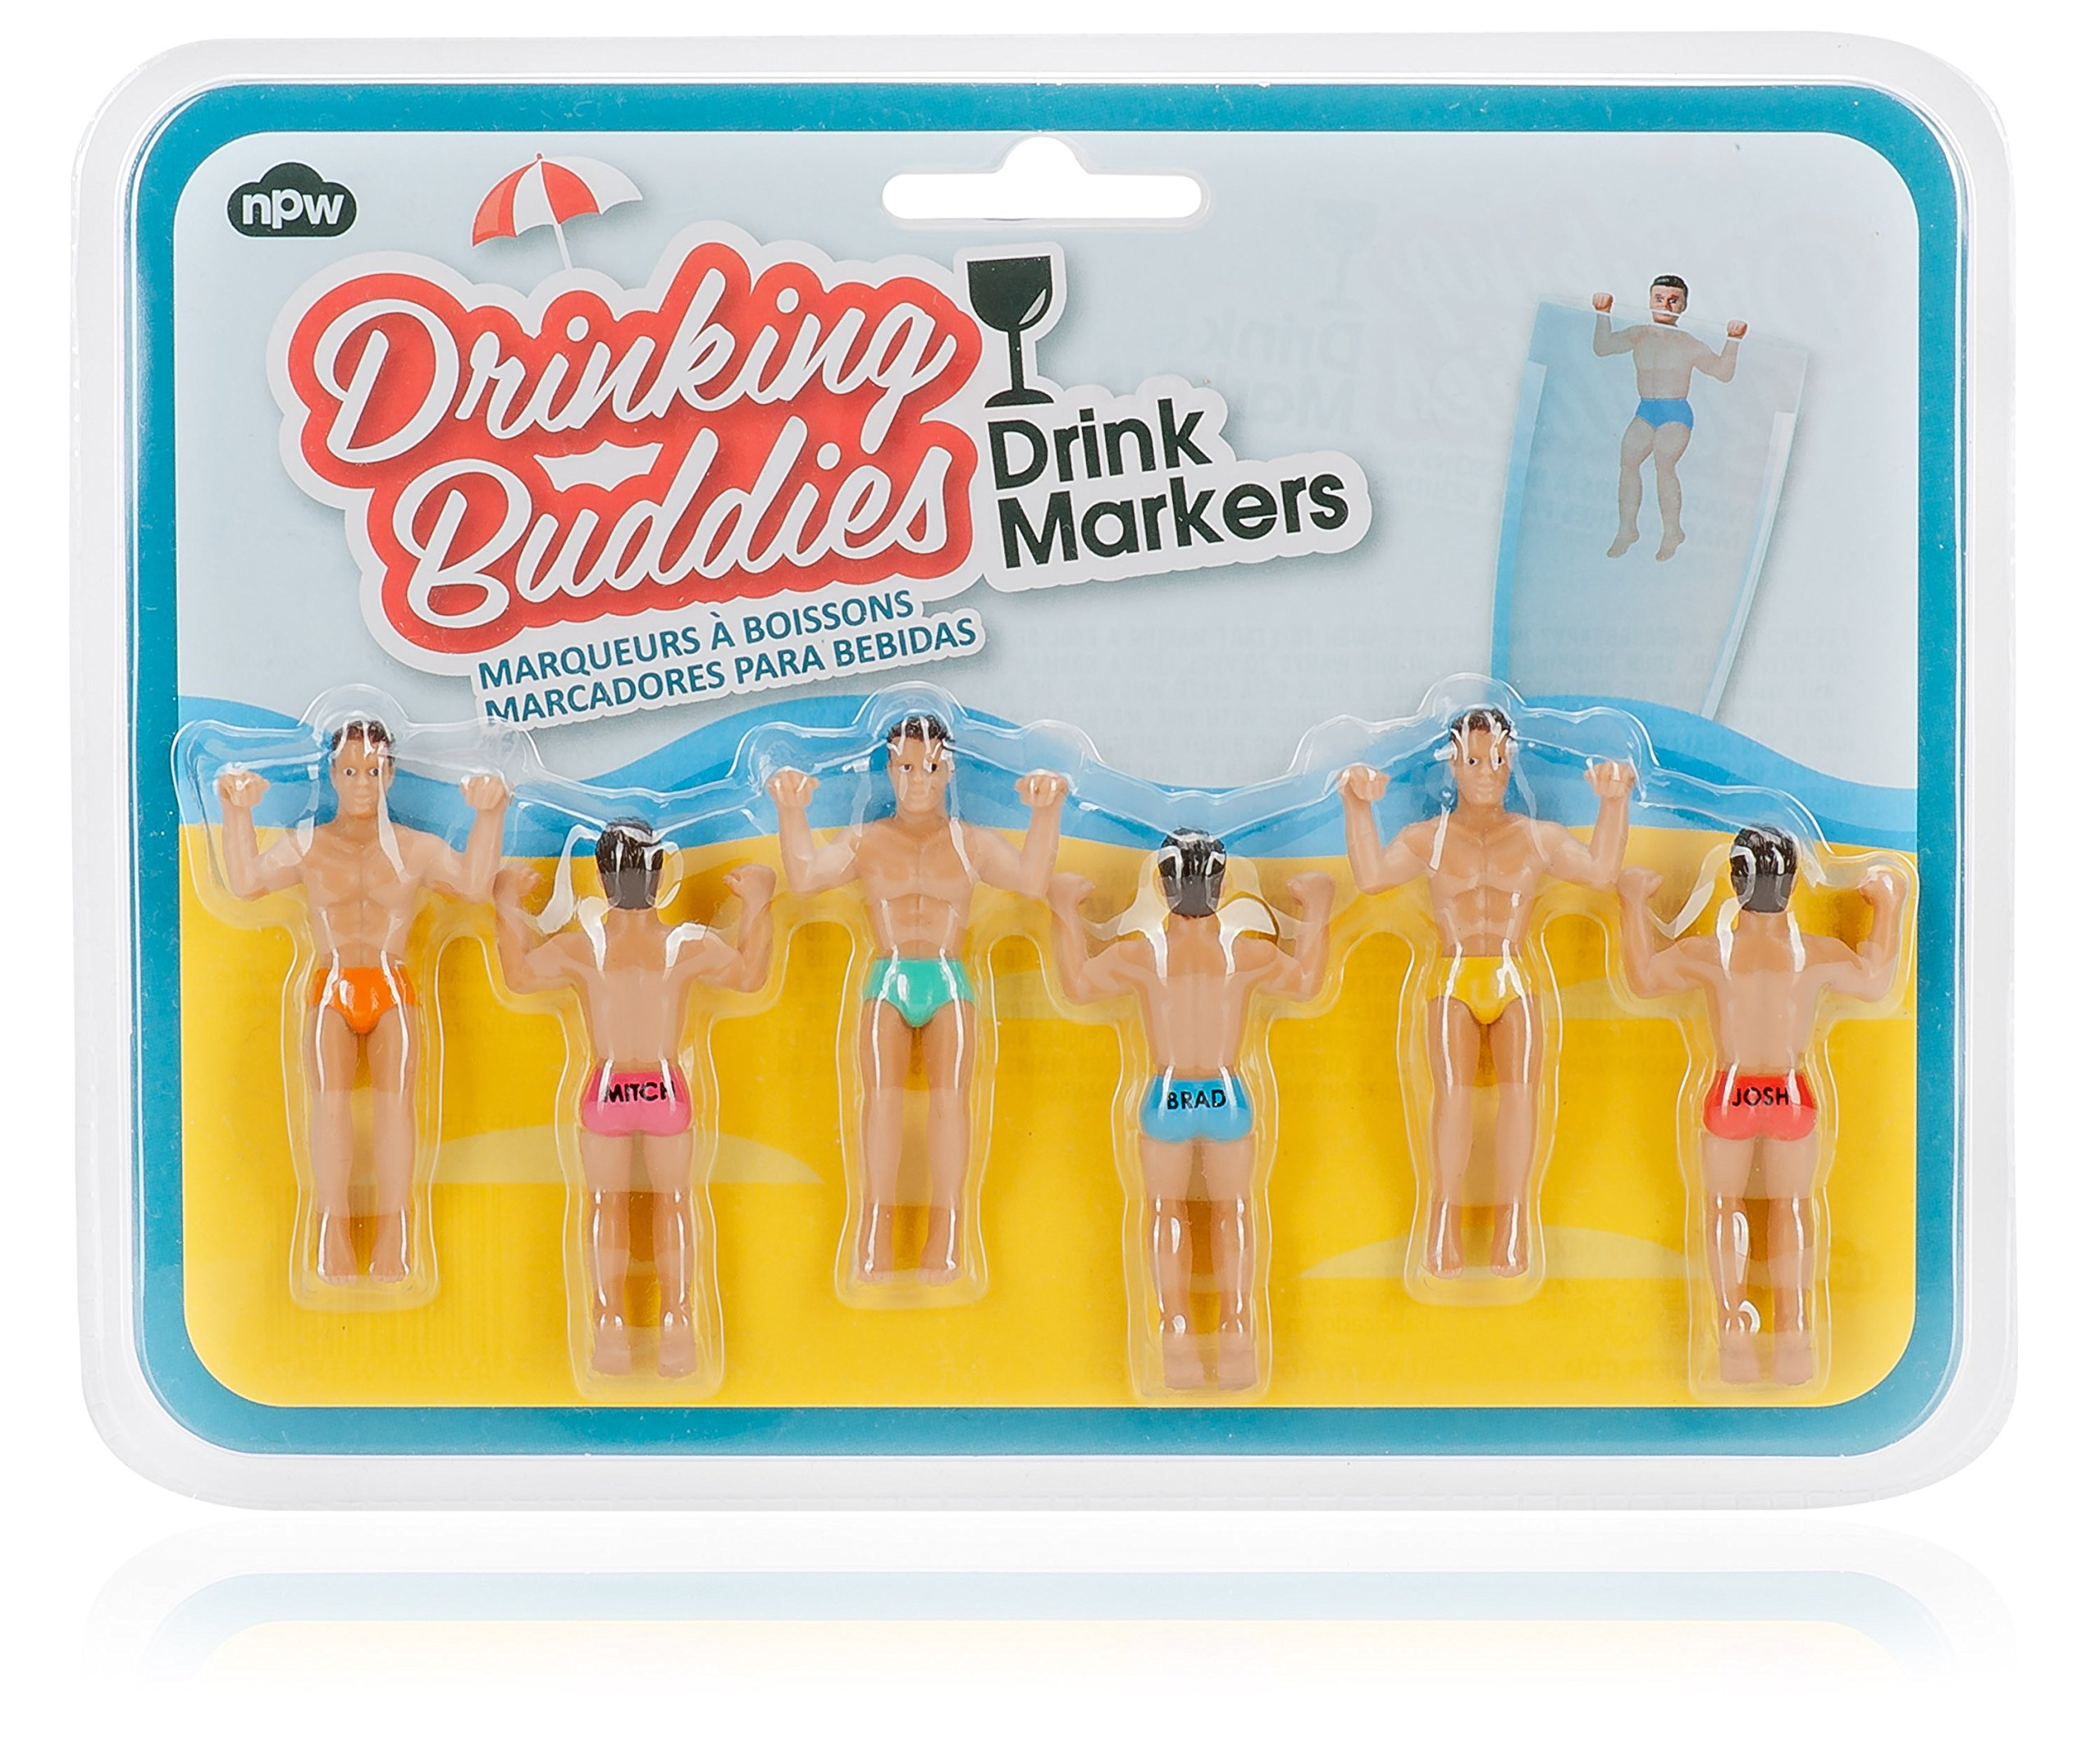 NPW Drinking Buddies Cocktail/Wine Glass Markers, 6-Count, Classic by NPW-USA (Image #4)